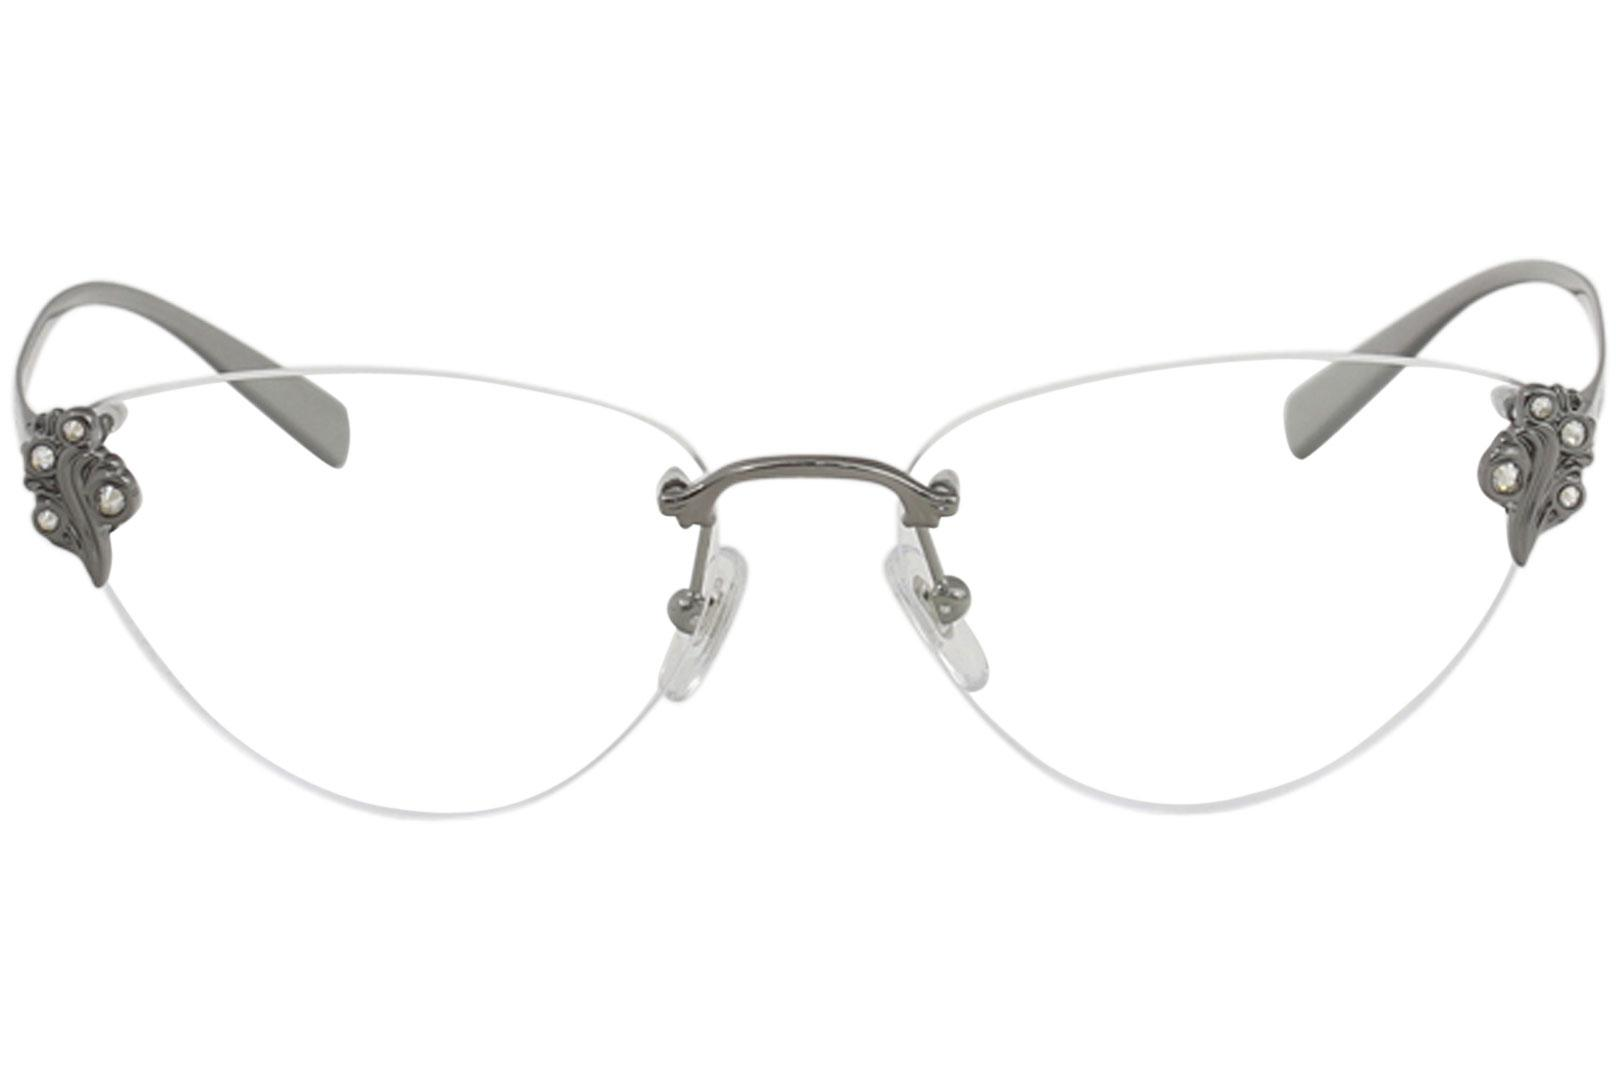 85d54a10167 Versace Women s Eyeglasses VE1254B VE 1254 B Rimless Optical Frame by  Versace